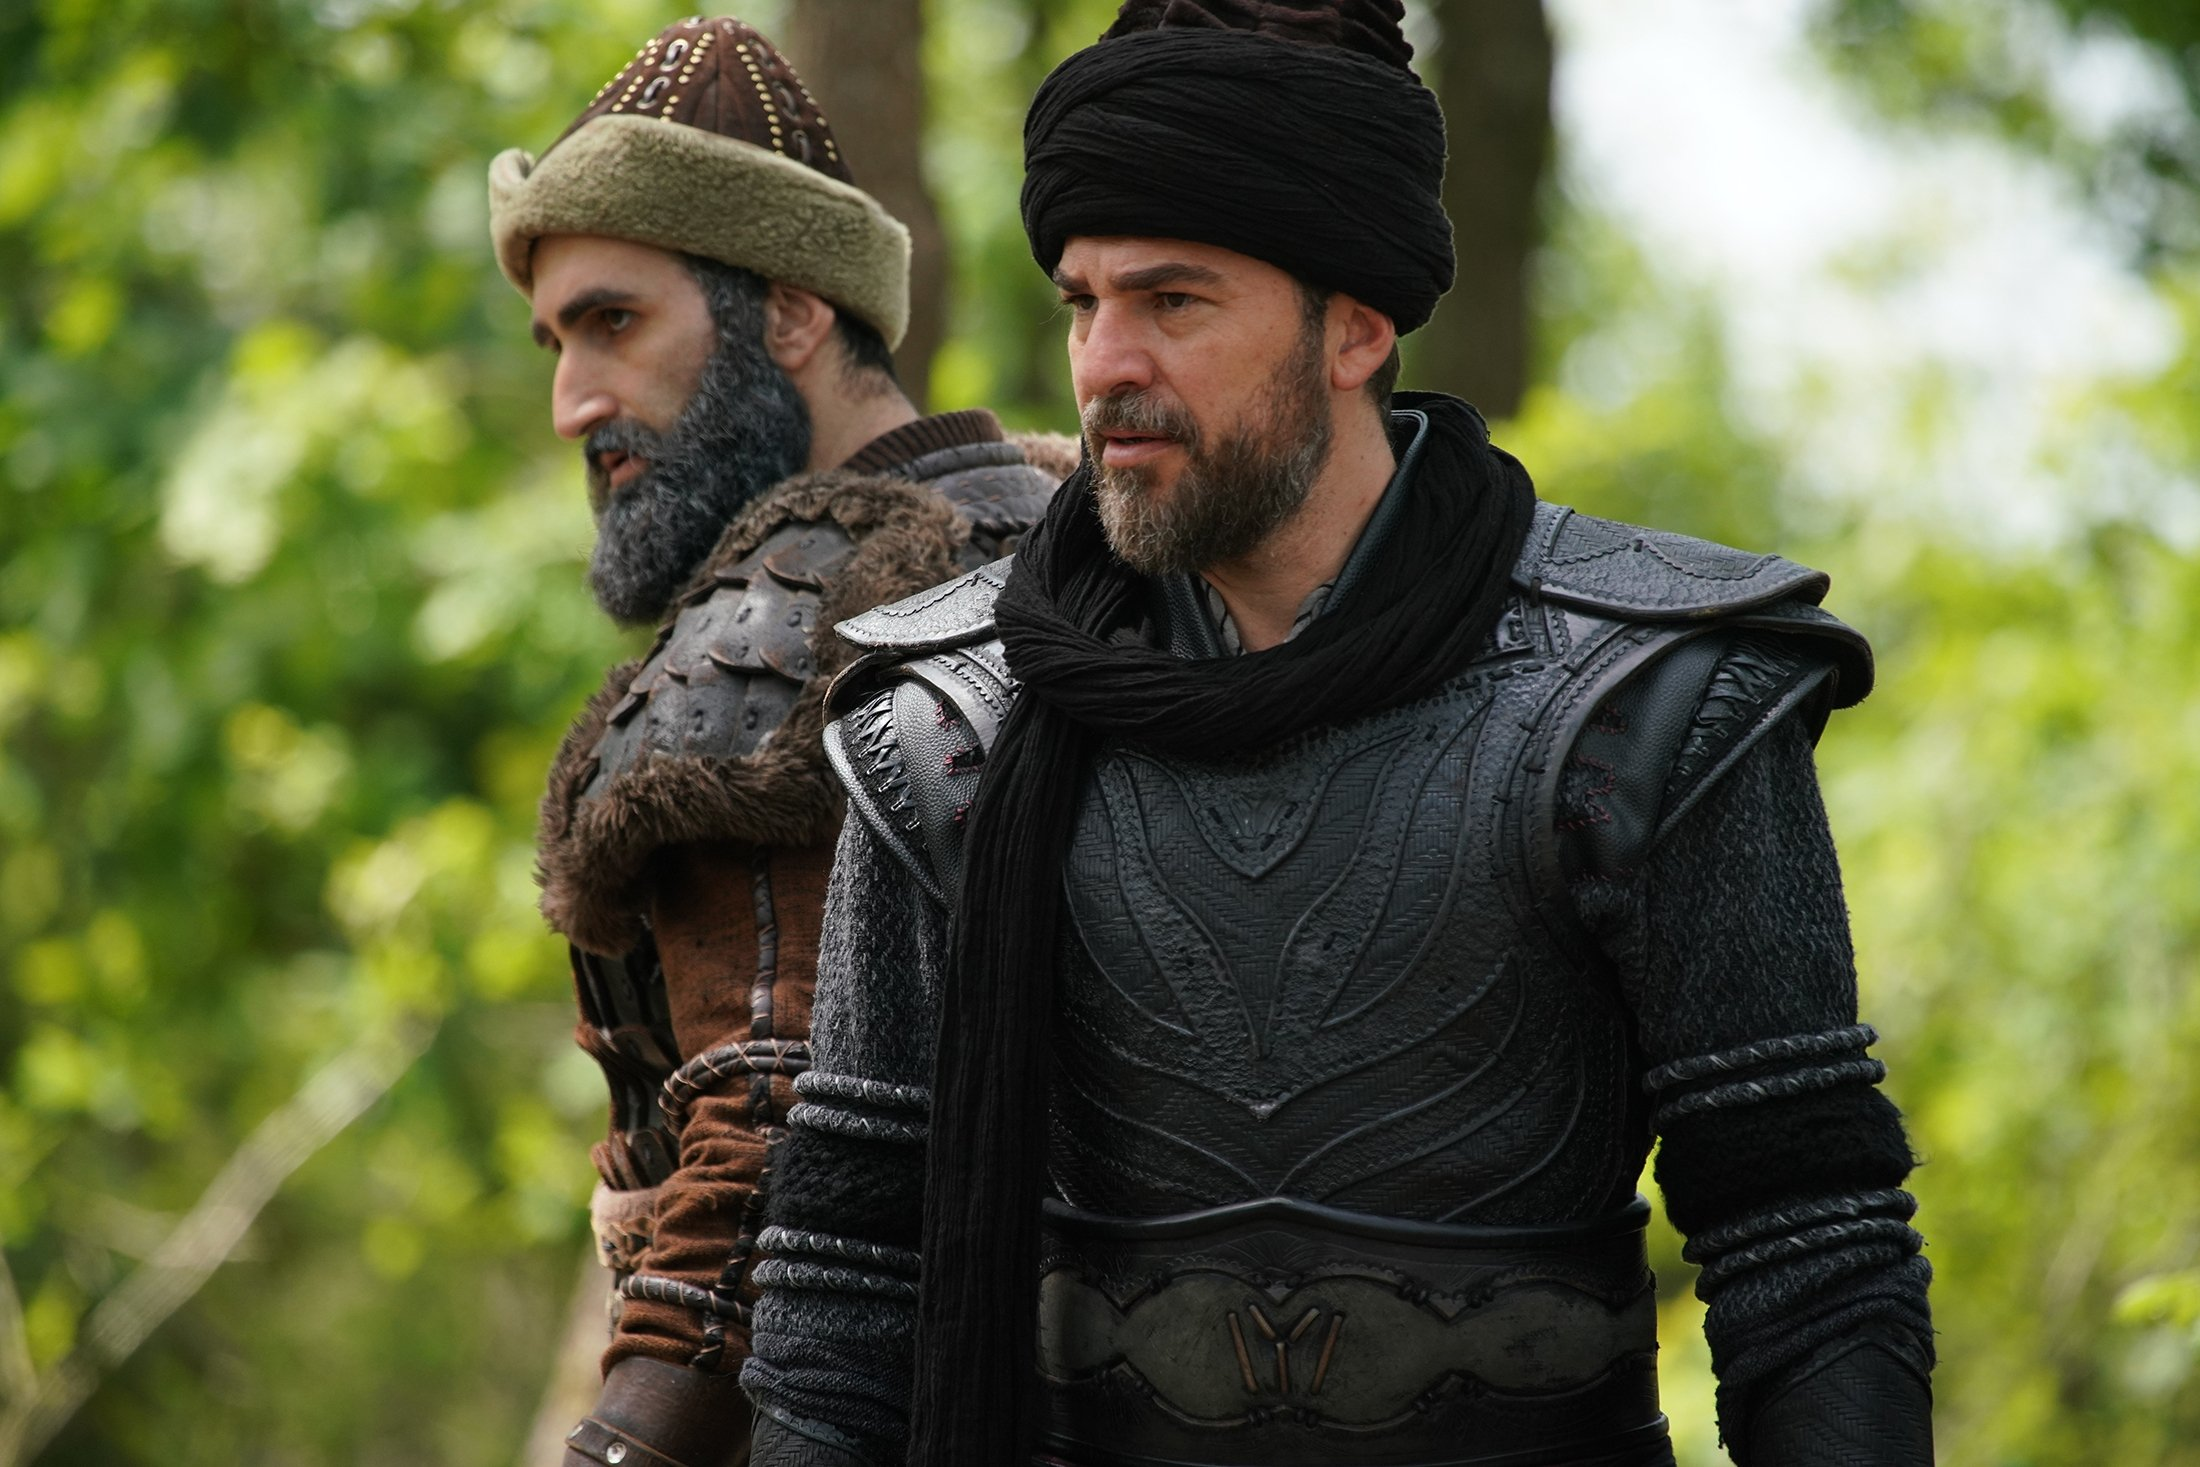 Börk hats (pictured on the left) have made a comeback thanks to Turkish historical drama Resurrection: Ertuğrul. (SABAH / FILE Photo)